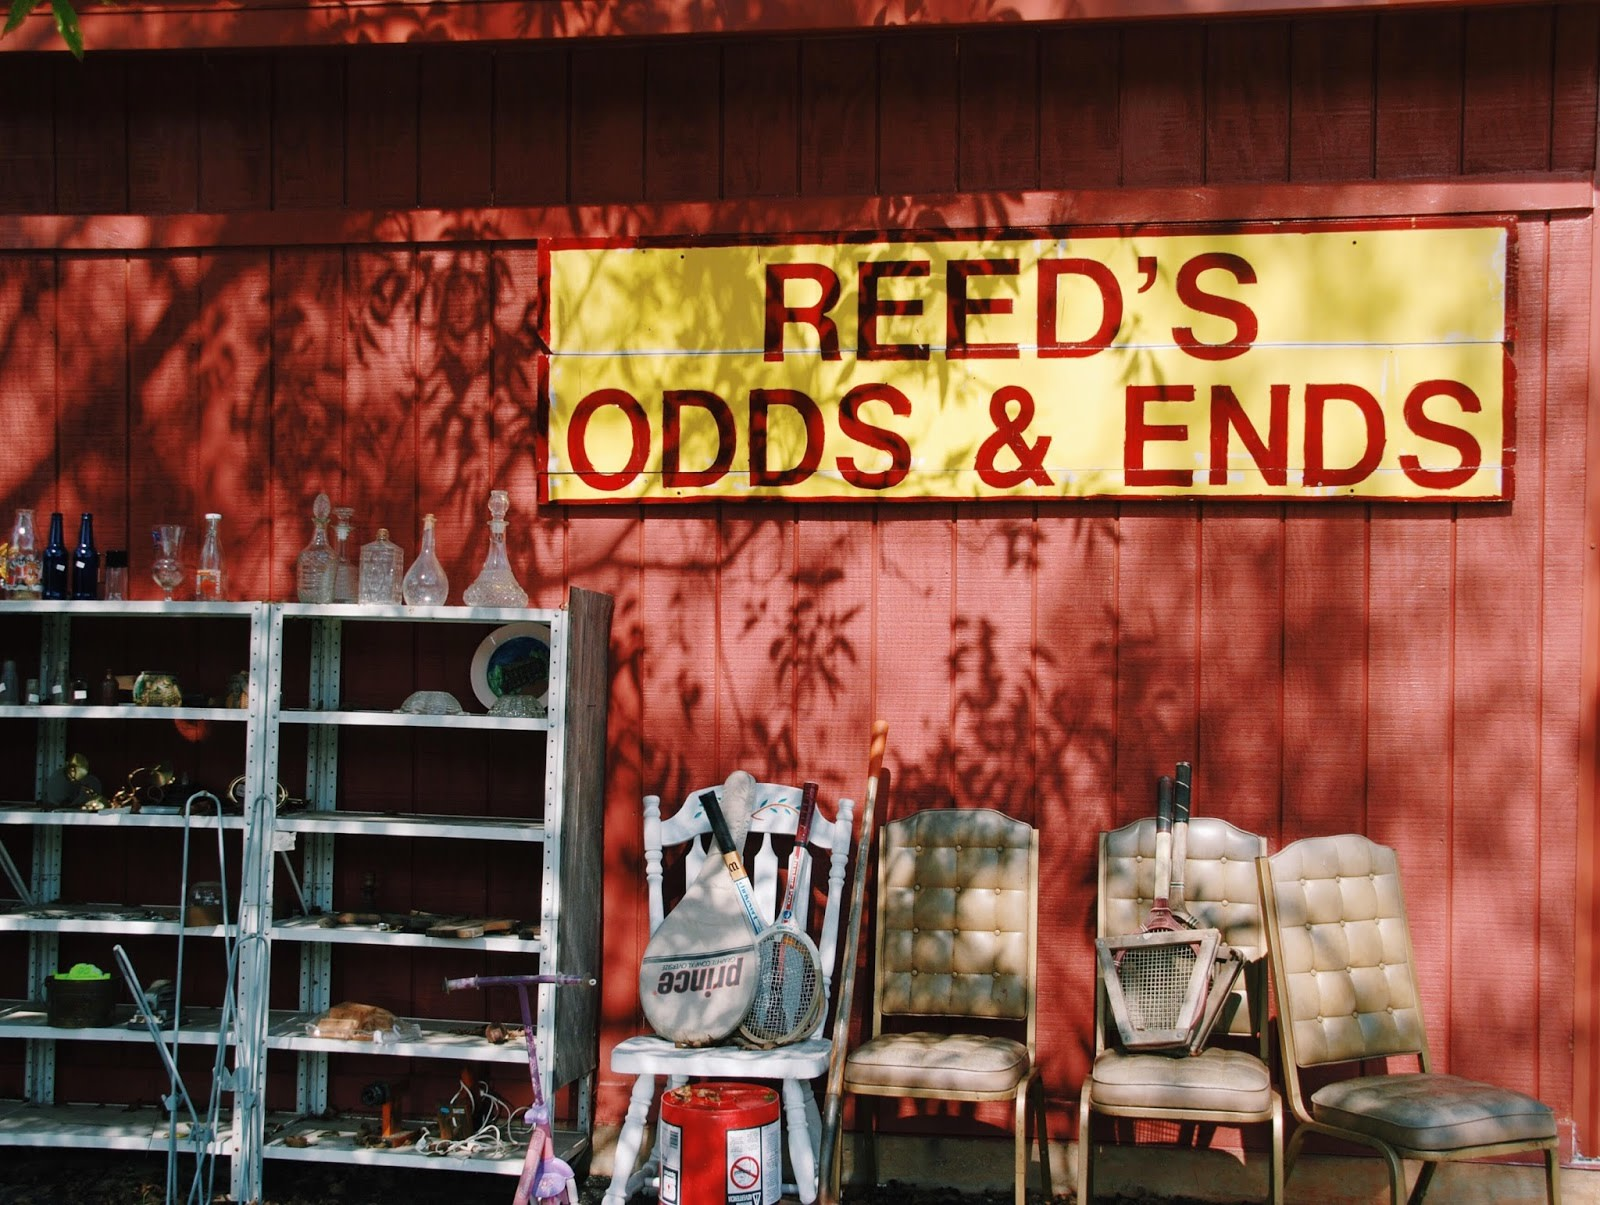 Reed's Odds & Ends